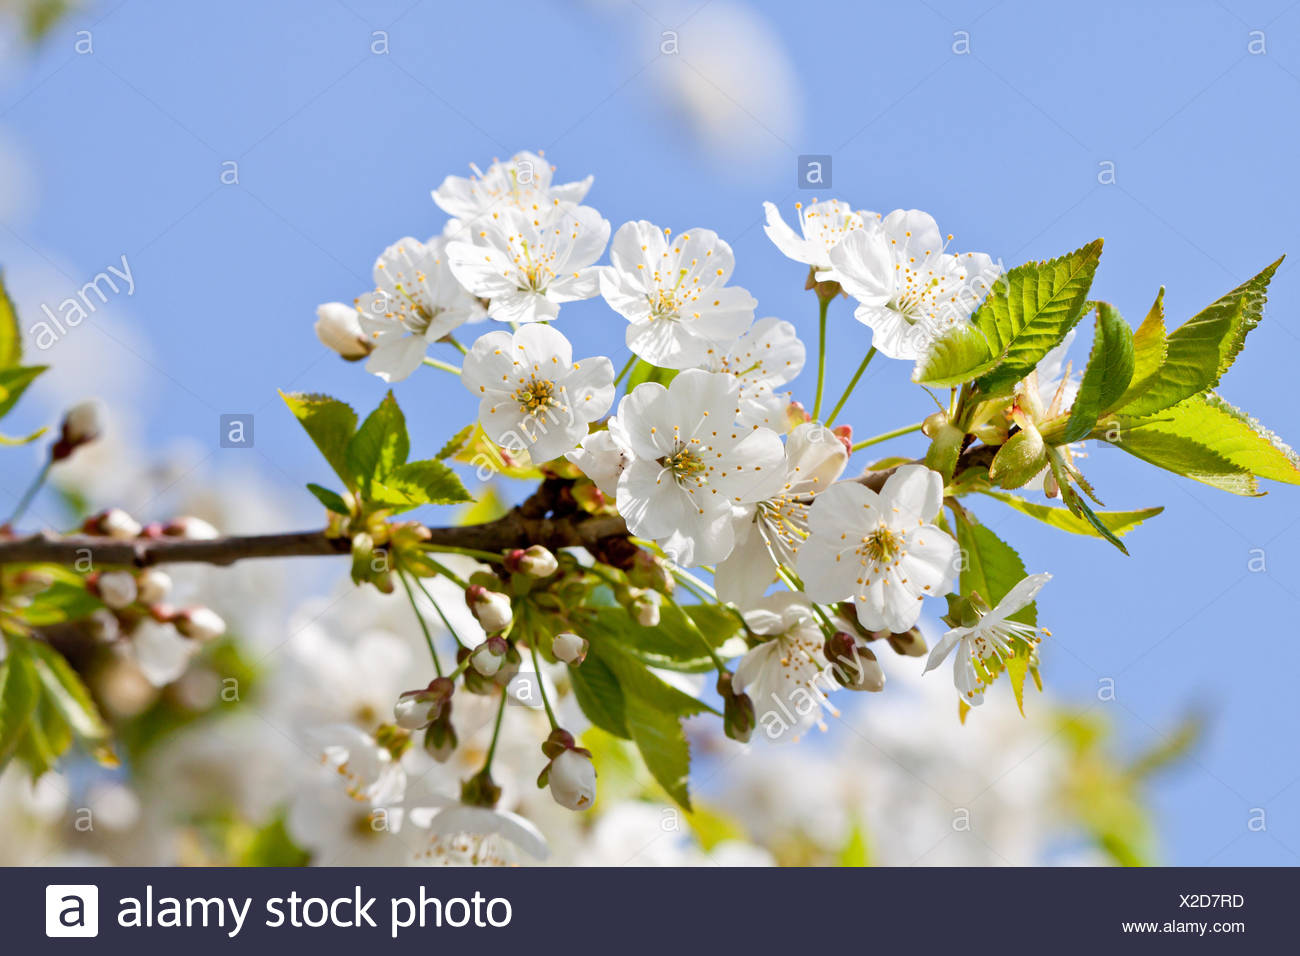 White Cherry Blossoms On A Branch Tree With Blue Himme Stock Photo